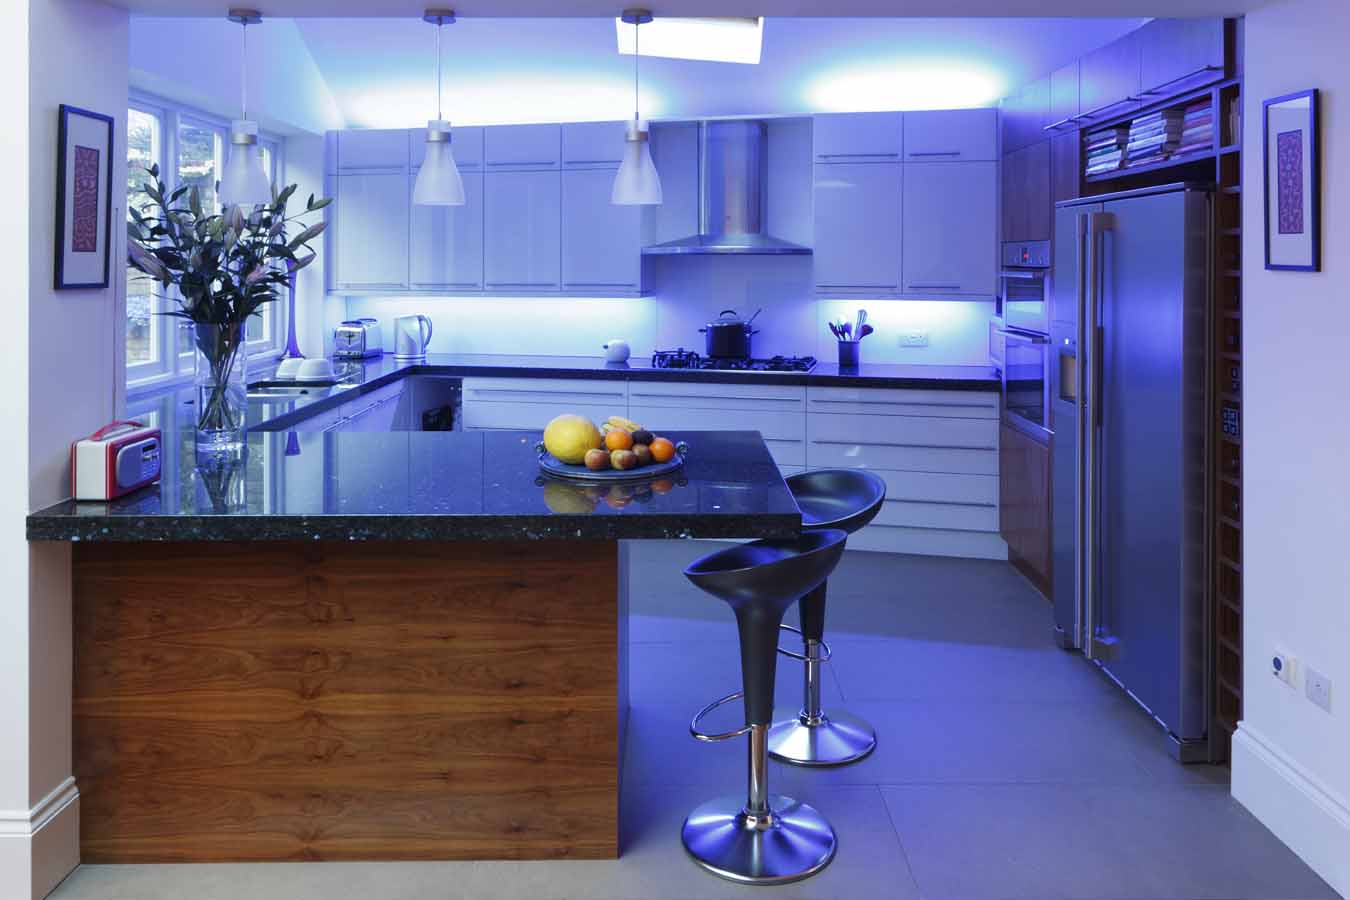 f98dd__Extraordinary-Small-Kitchen-With-Blue-LED-Lighting LEDs 10 uses in Architecture